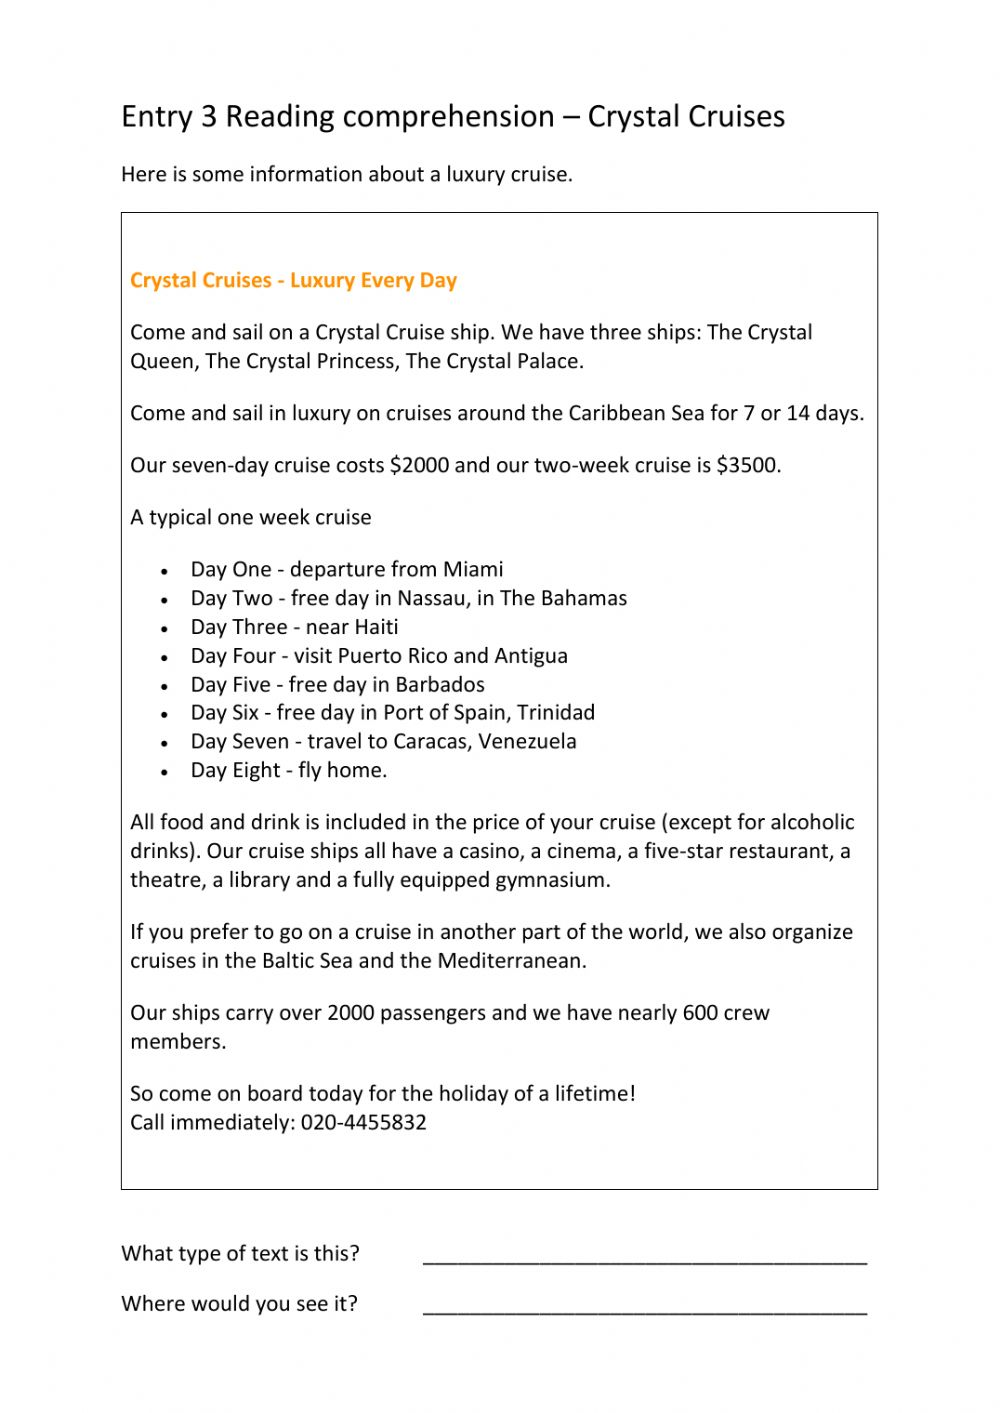 hight resolution of ESOL Entry 3 Reading Comp - Crystal cruises worksheet